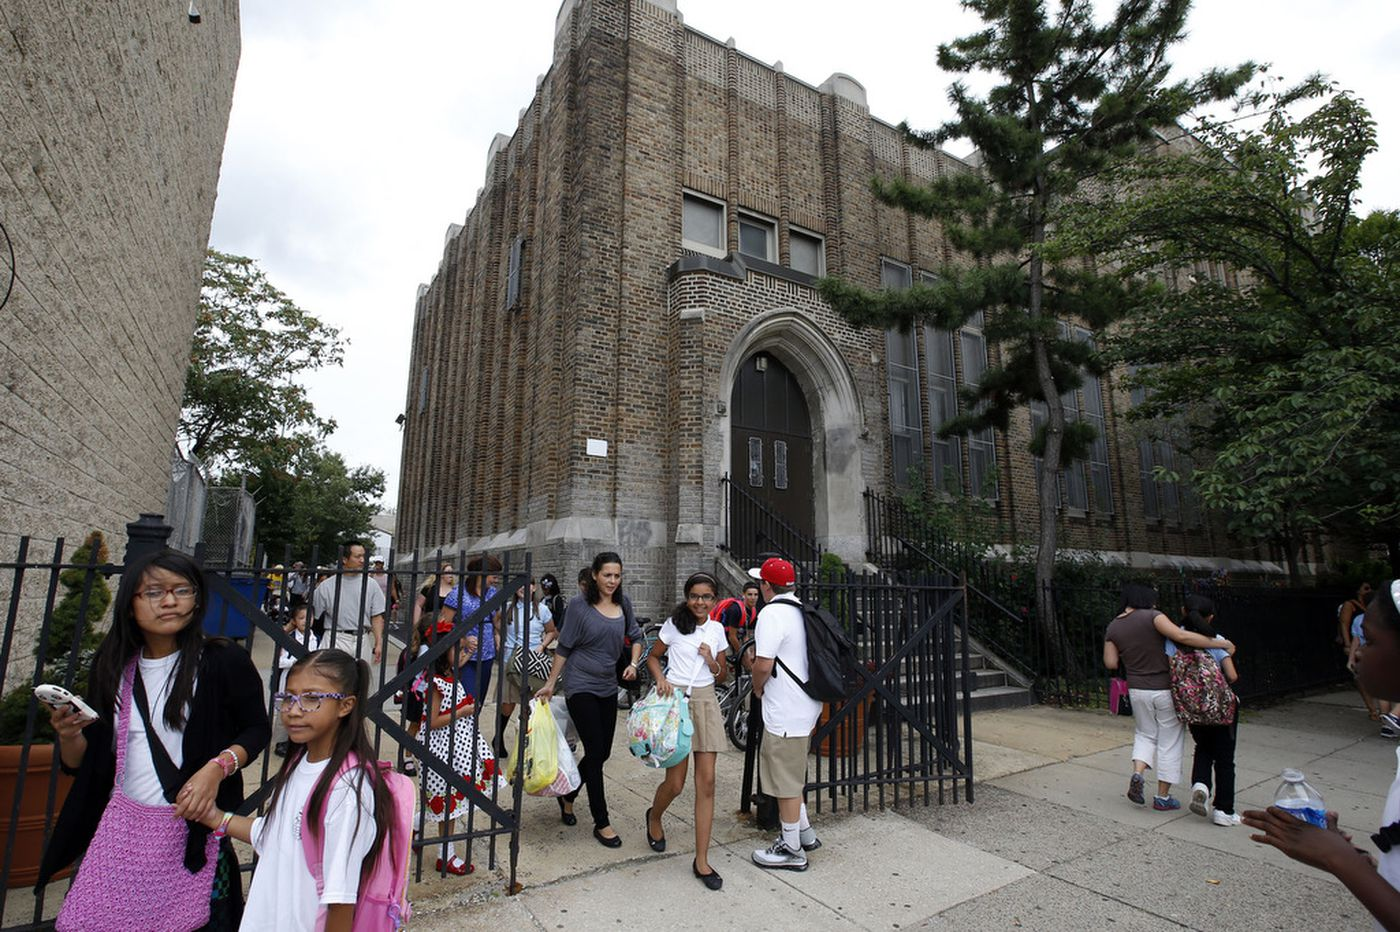 With news of Philly teacher getting sick from schools, Penn should step up | Opinion